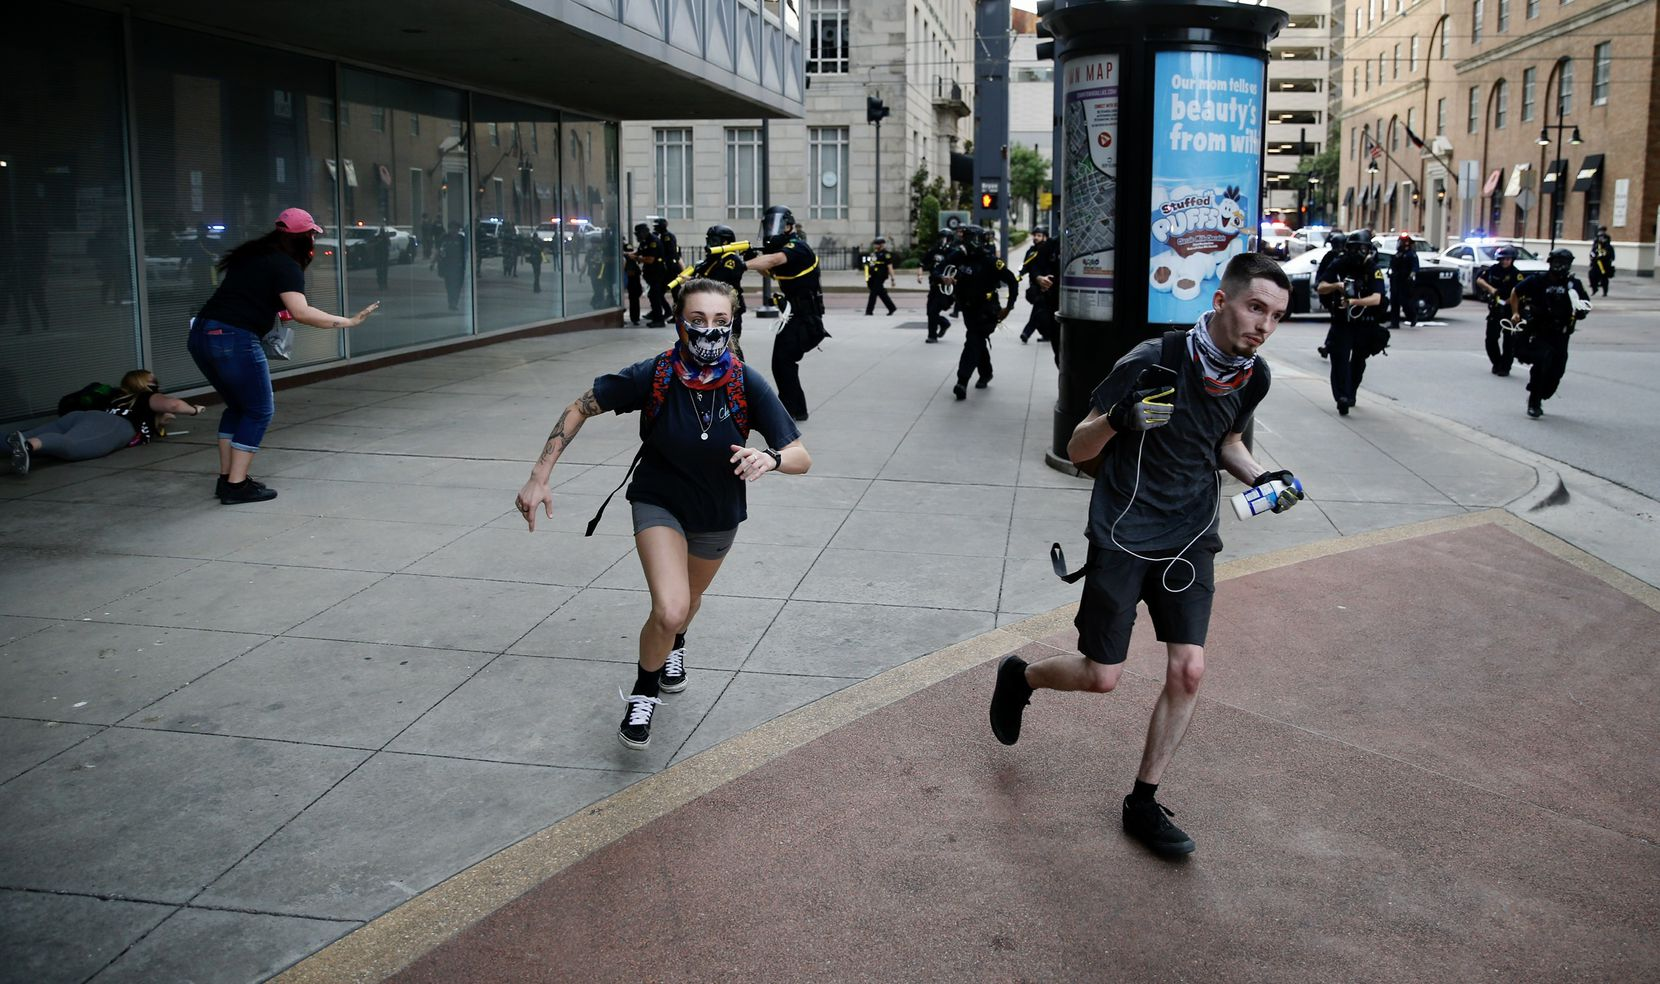 Dallas police made arrests as they cleared out downtown after a 7 p.m. curfew took effect May 31.